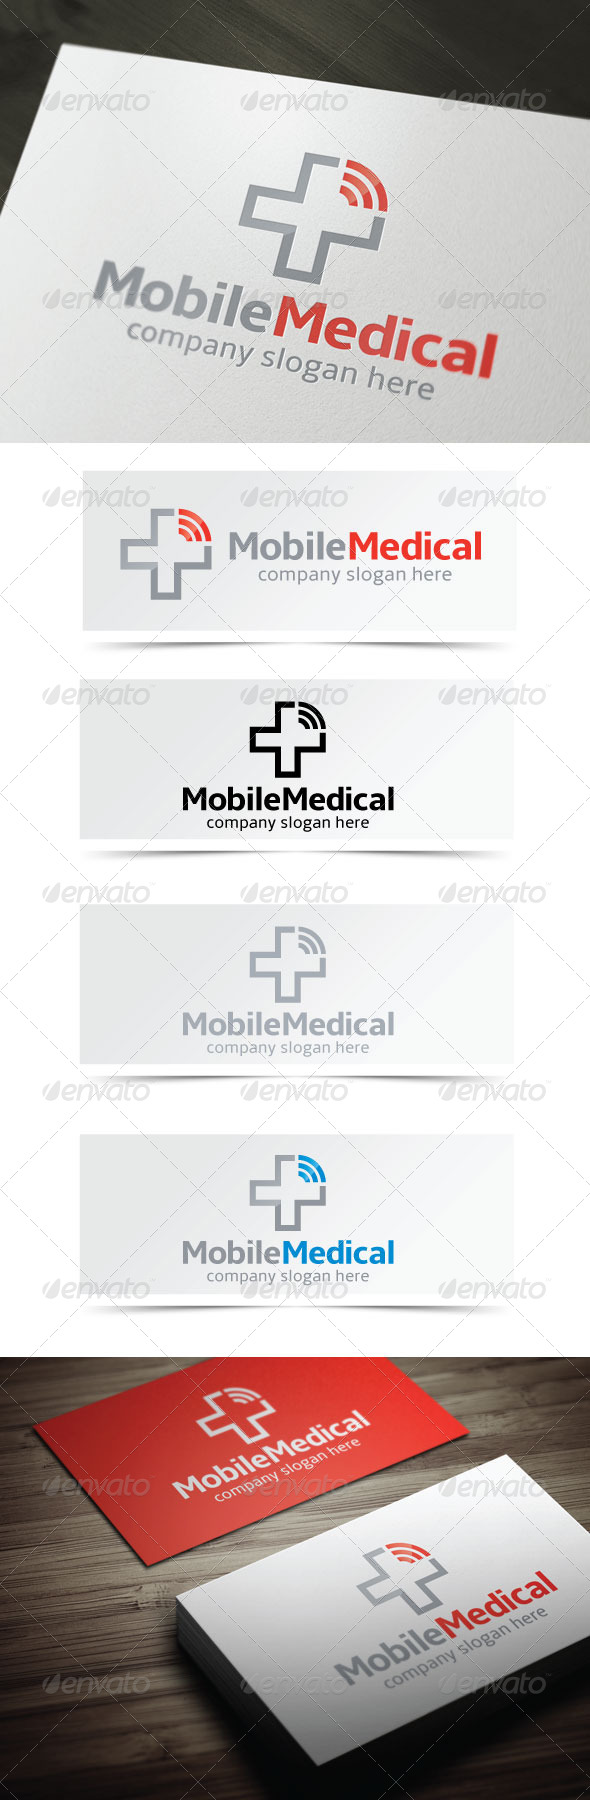 GraphicRiver Mobile Medical 4385408